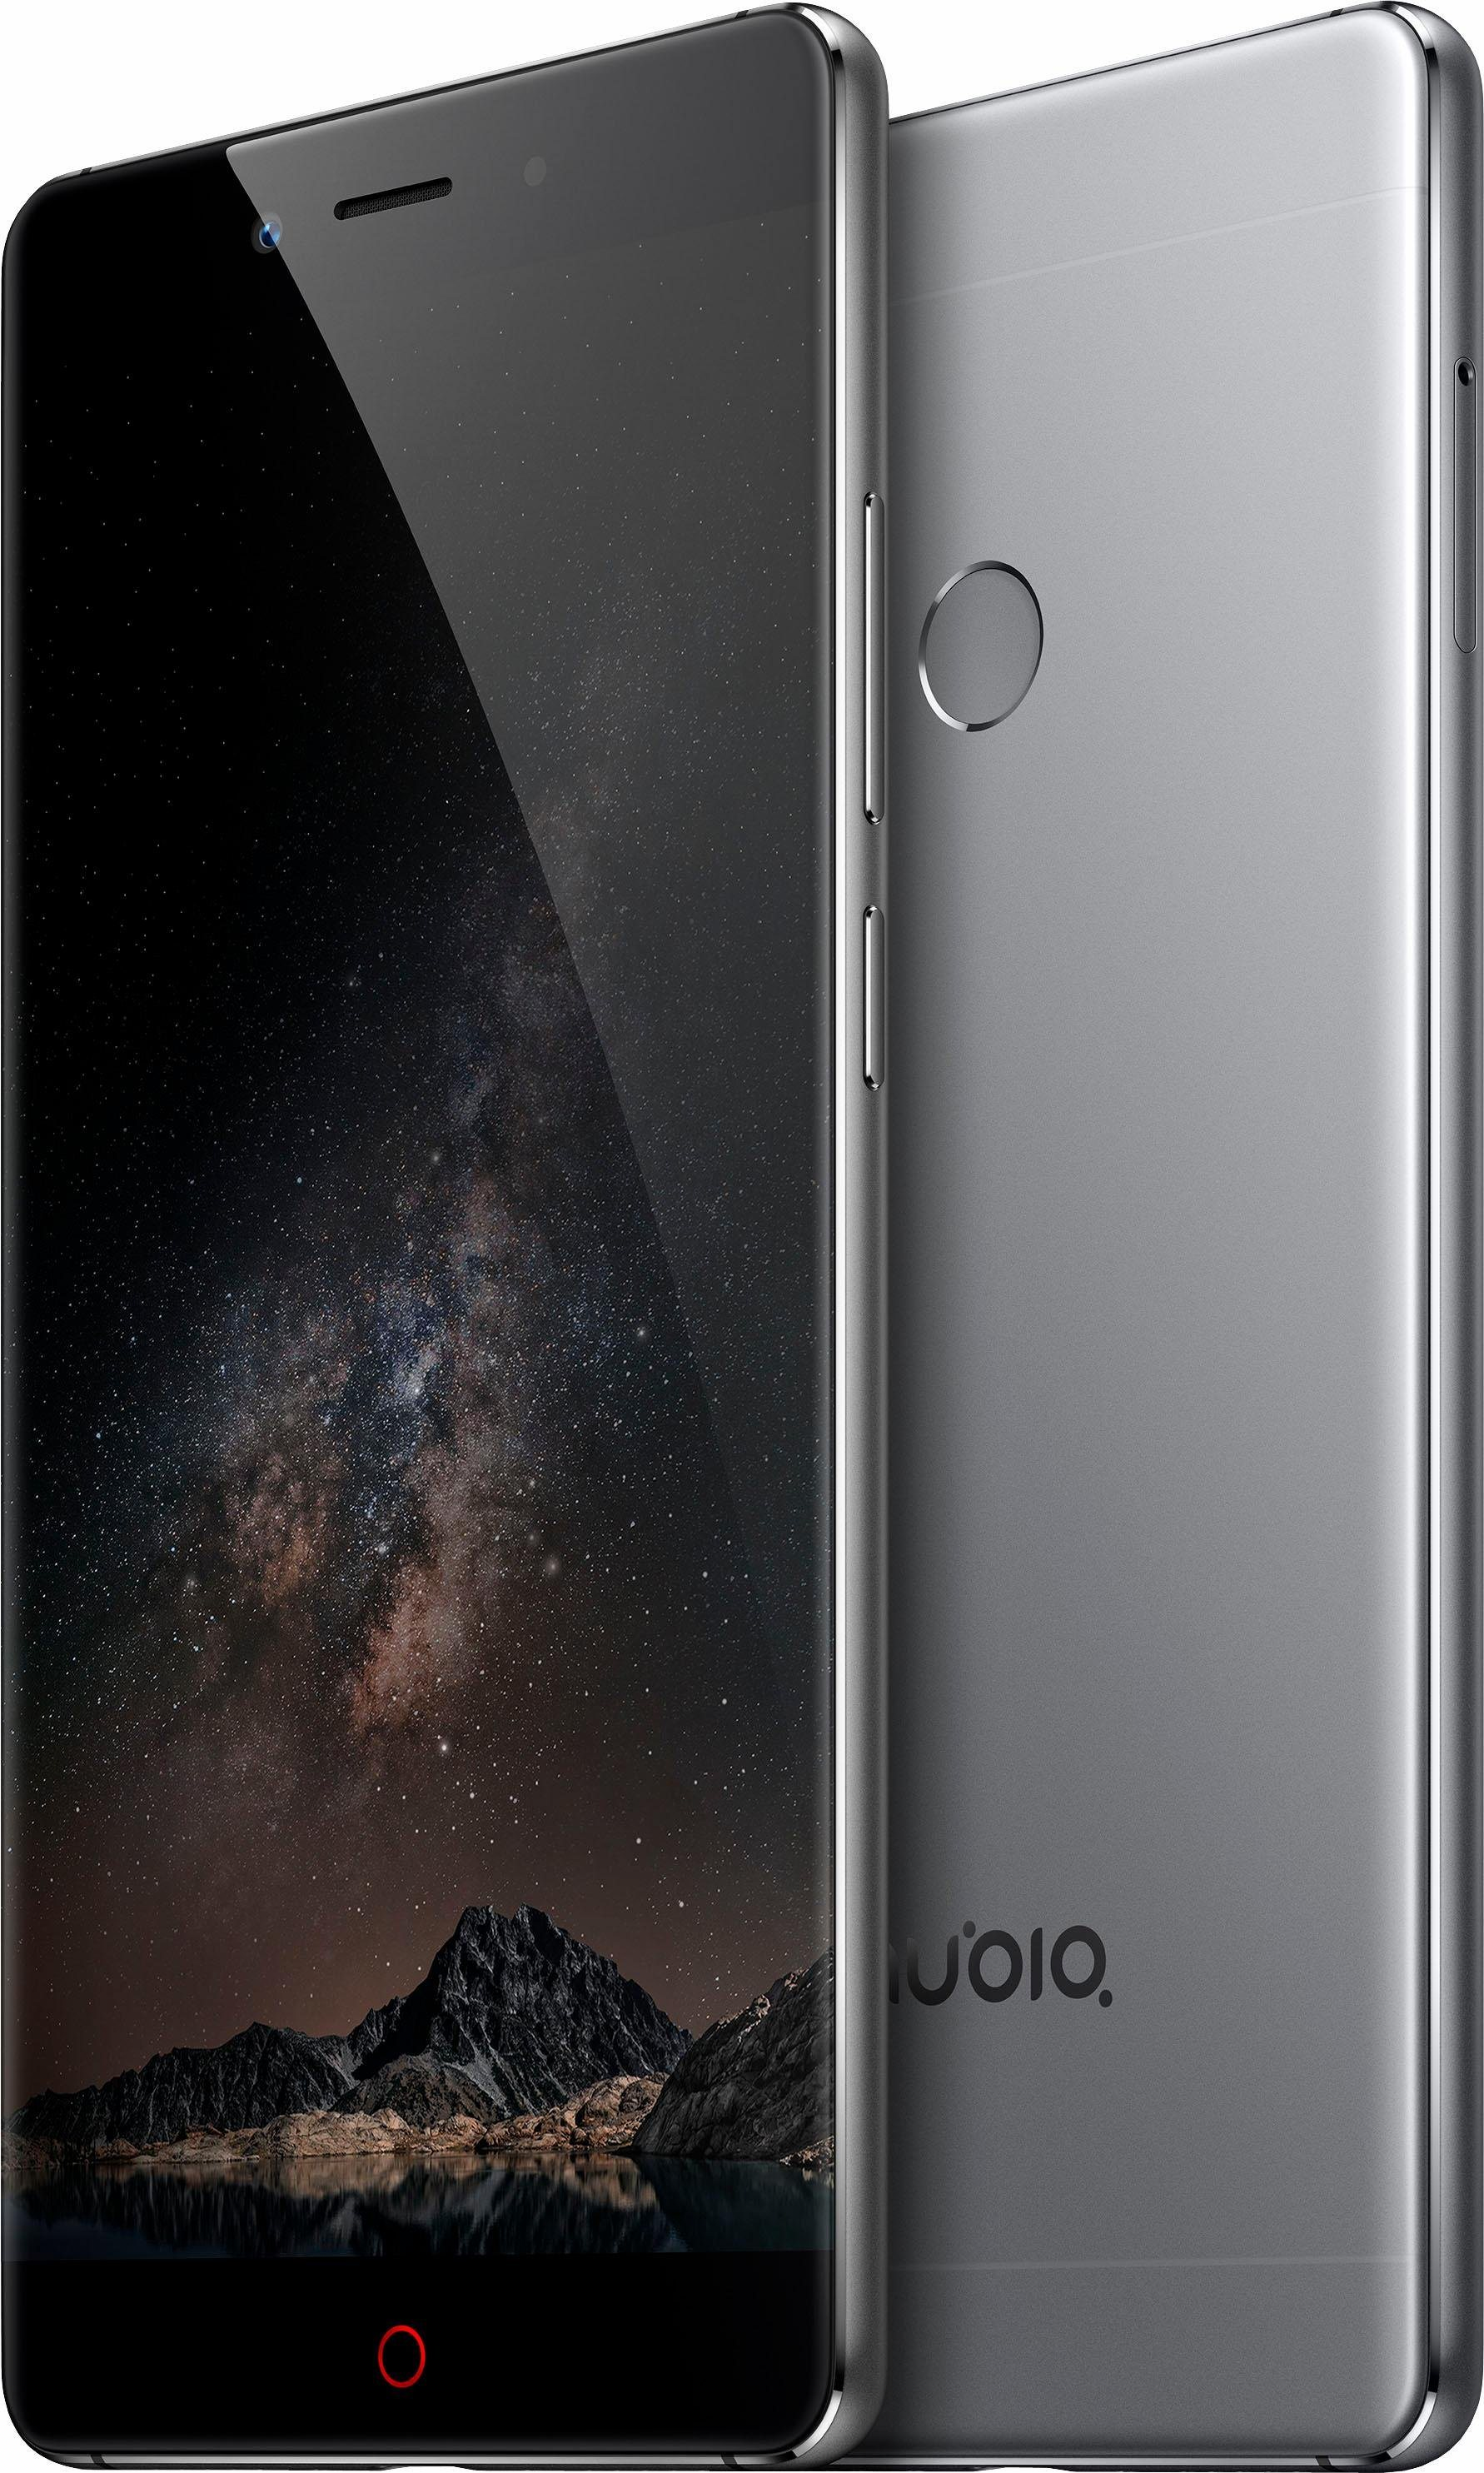 Nubia Z11 - 4GB Smartphone, 13,97 cm (5,5 Zoll) Display, LTE (4G), Android 6.0 (Marshmallow)